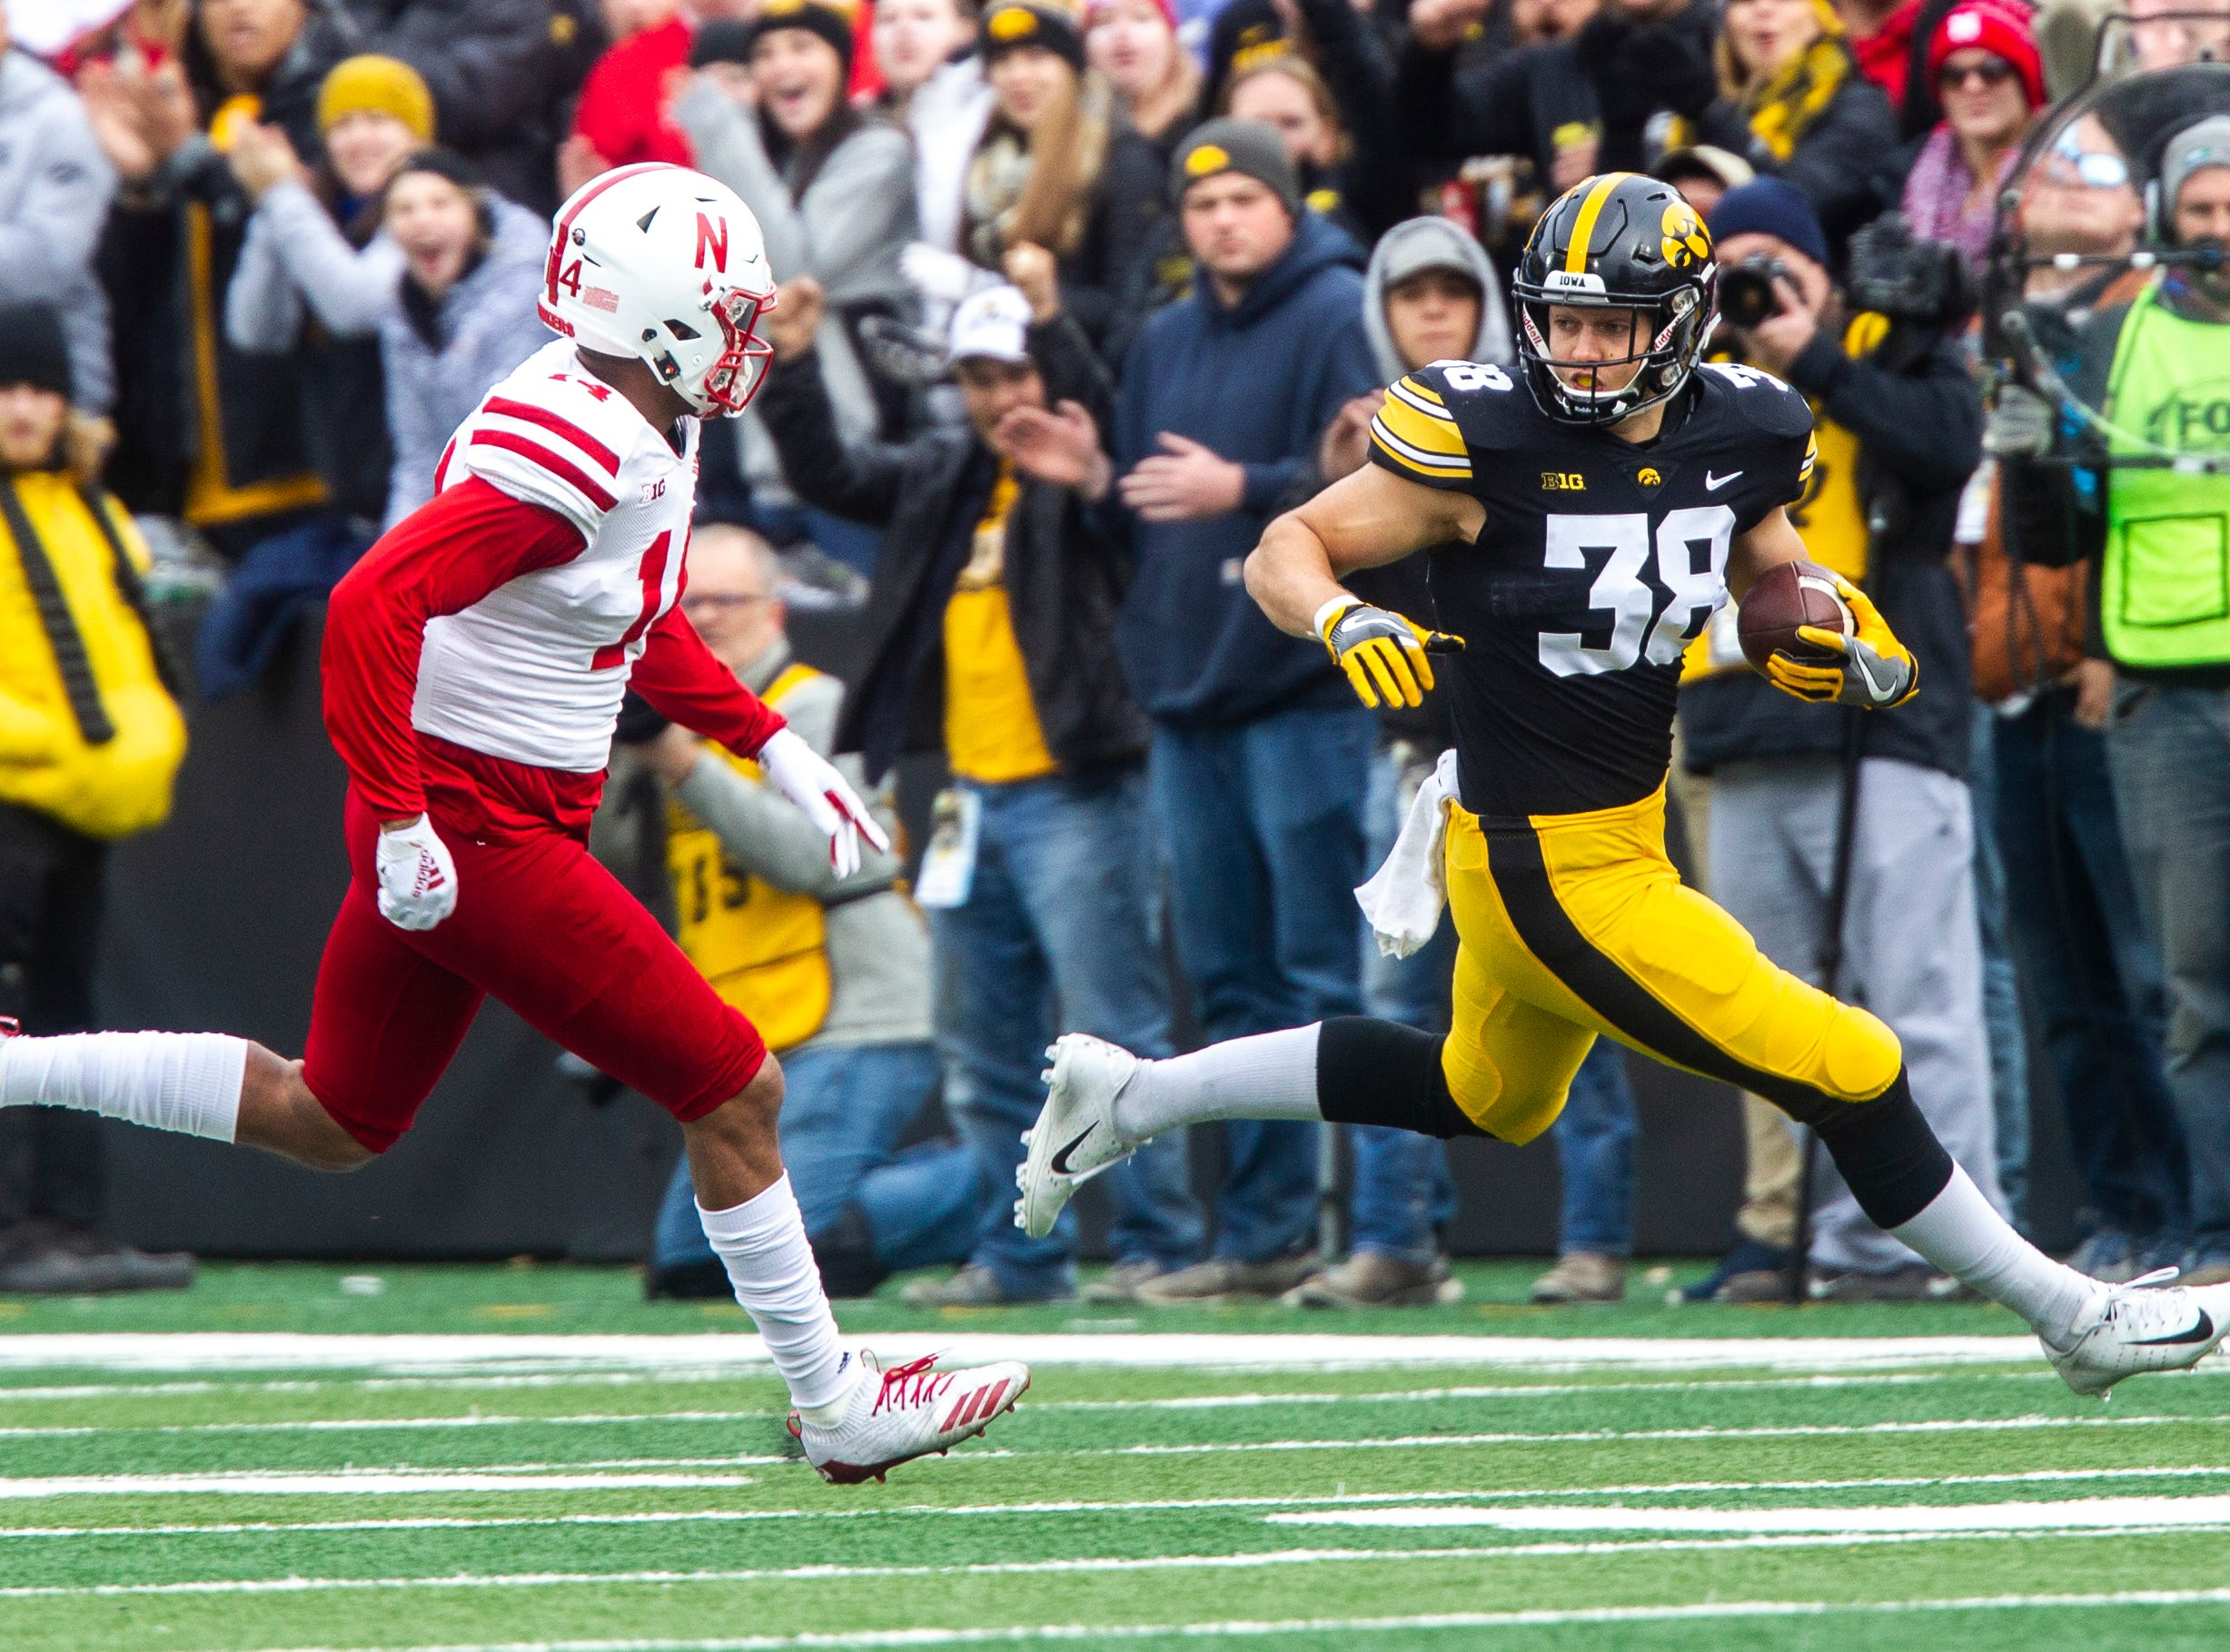 Iowa tight end T.J. Hockenson (38) evades Nebraska's Tre Neal (14) on a 25-yard reception during a Big Ten Conference NCAA football game on Friday, Nov. 23, 2018, at Kinnick Stadium in Iowa City.